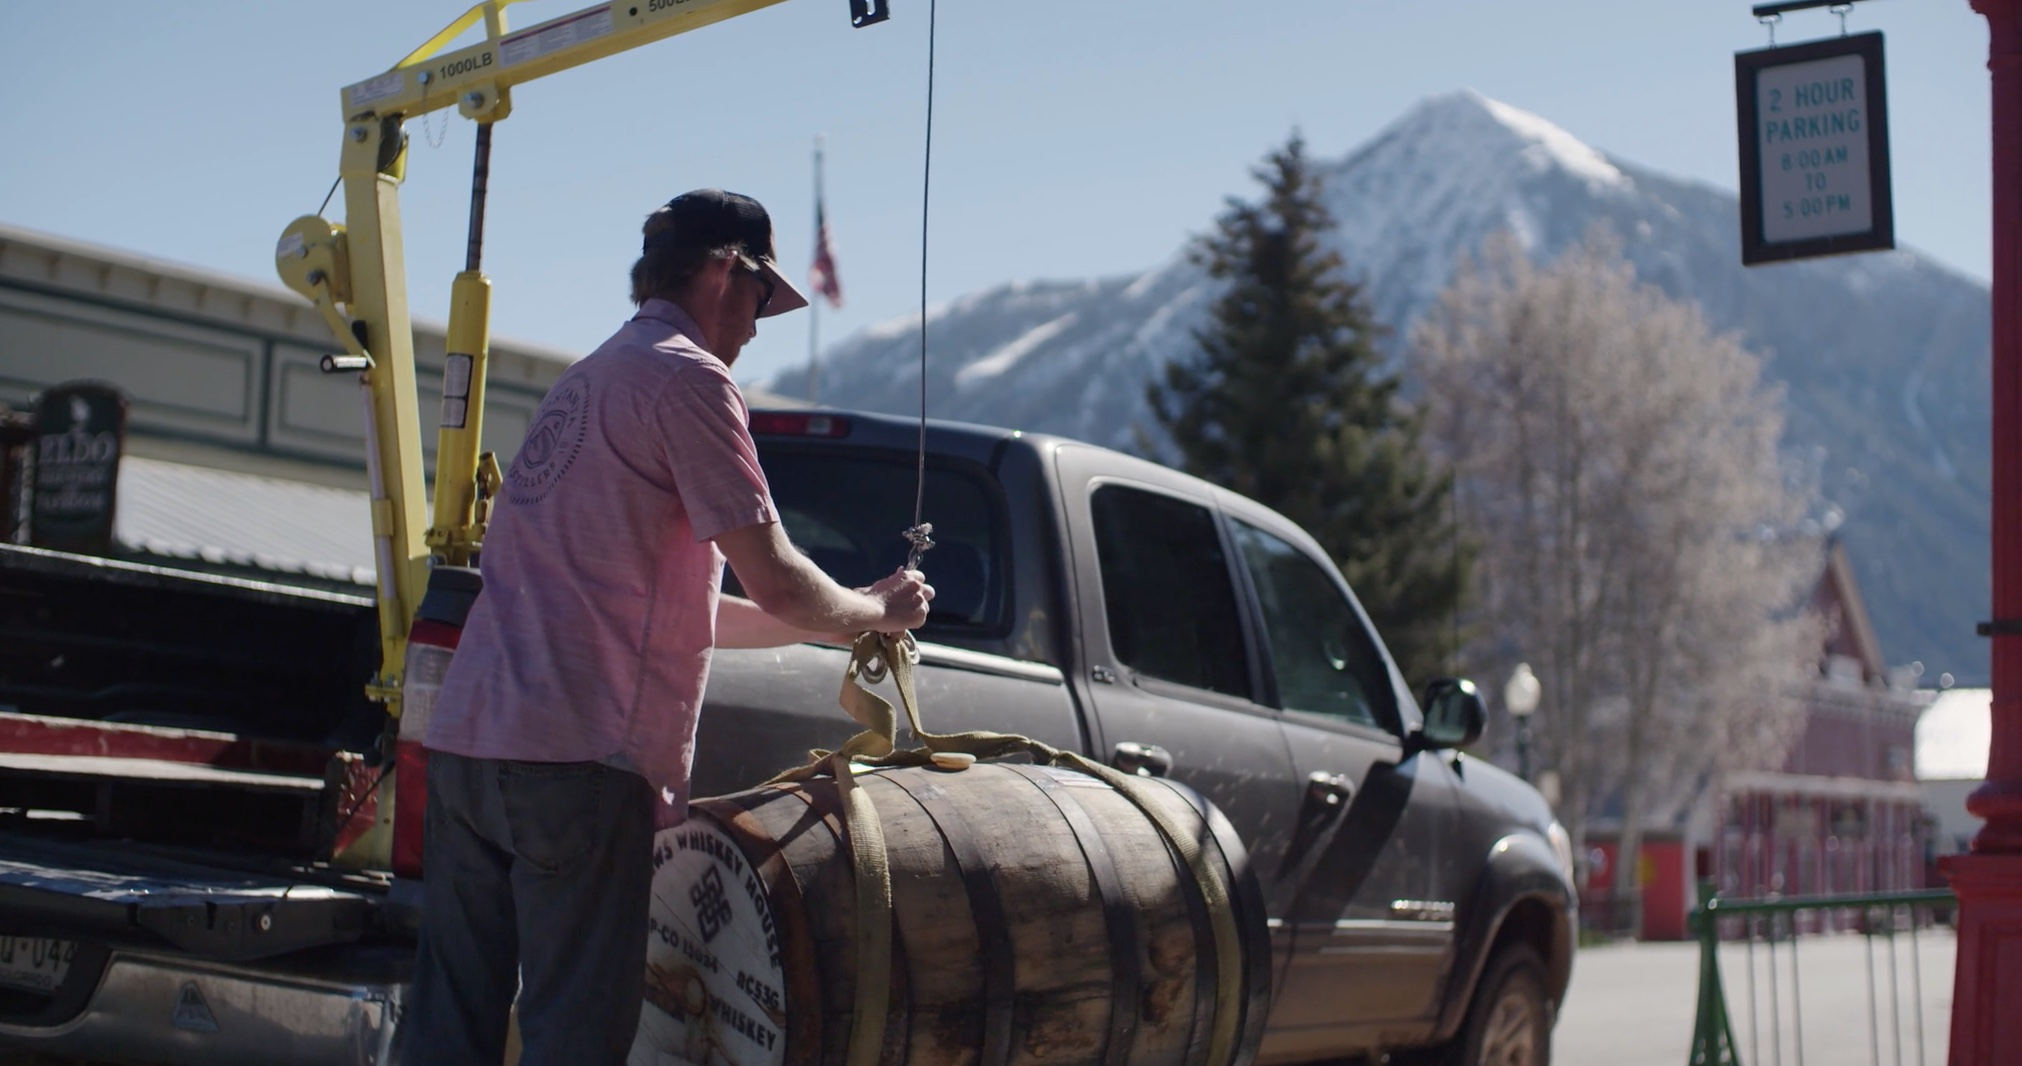 Headed to the Barrel House - To save our aching backs, we use a pulley system to transport barrels of rum from the Distillery in downtown Crested Butte into the rig that transports them to the barrel house two miles south of town.